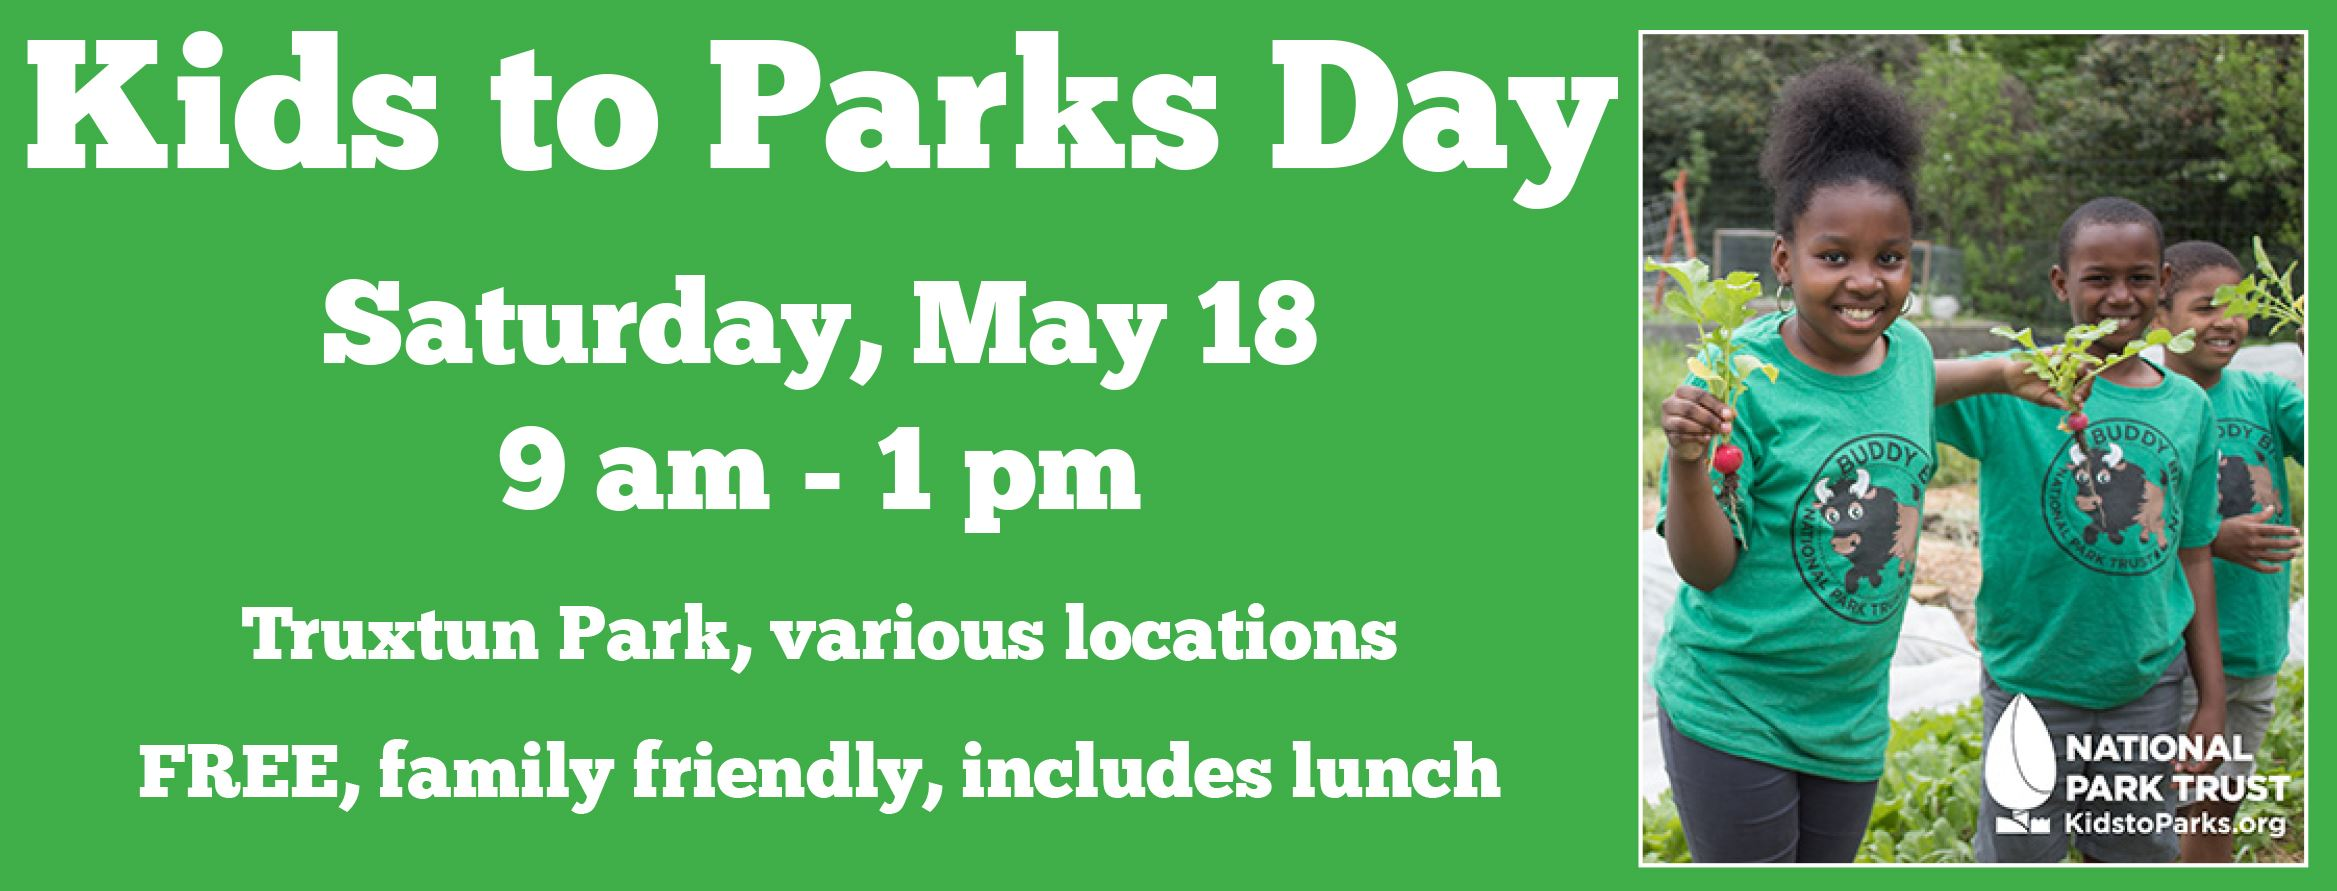 Kids to Parks Day 2019 save the date